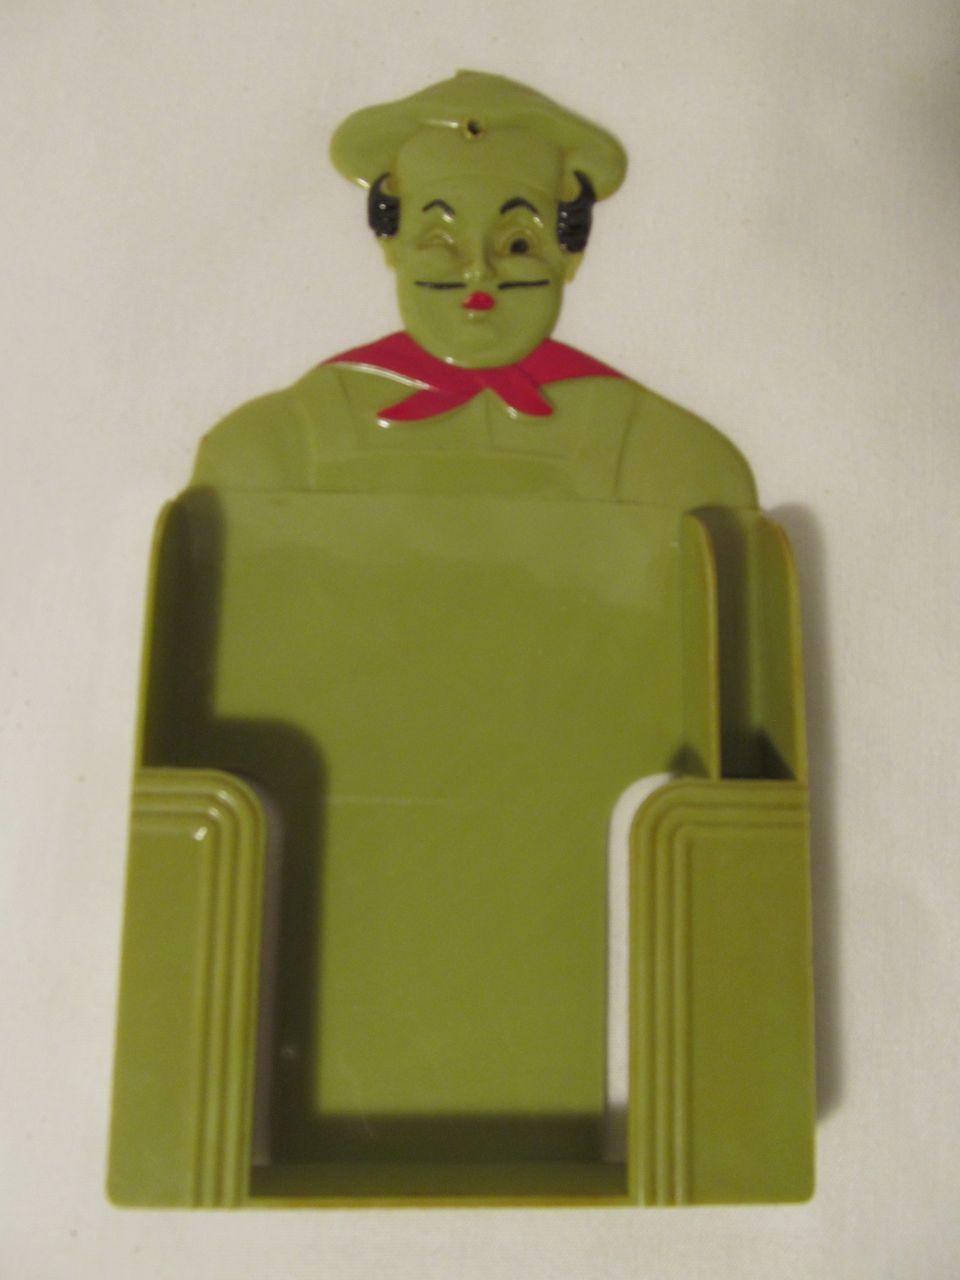 Plastic Chef Memo Pad and Pencil Holder